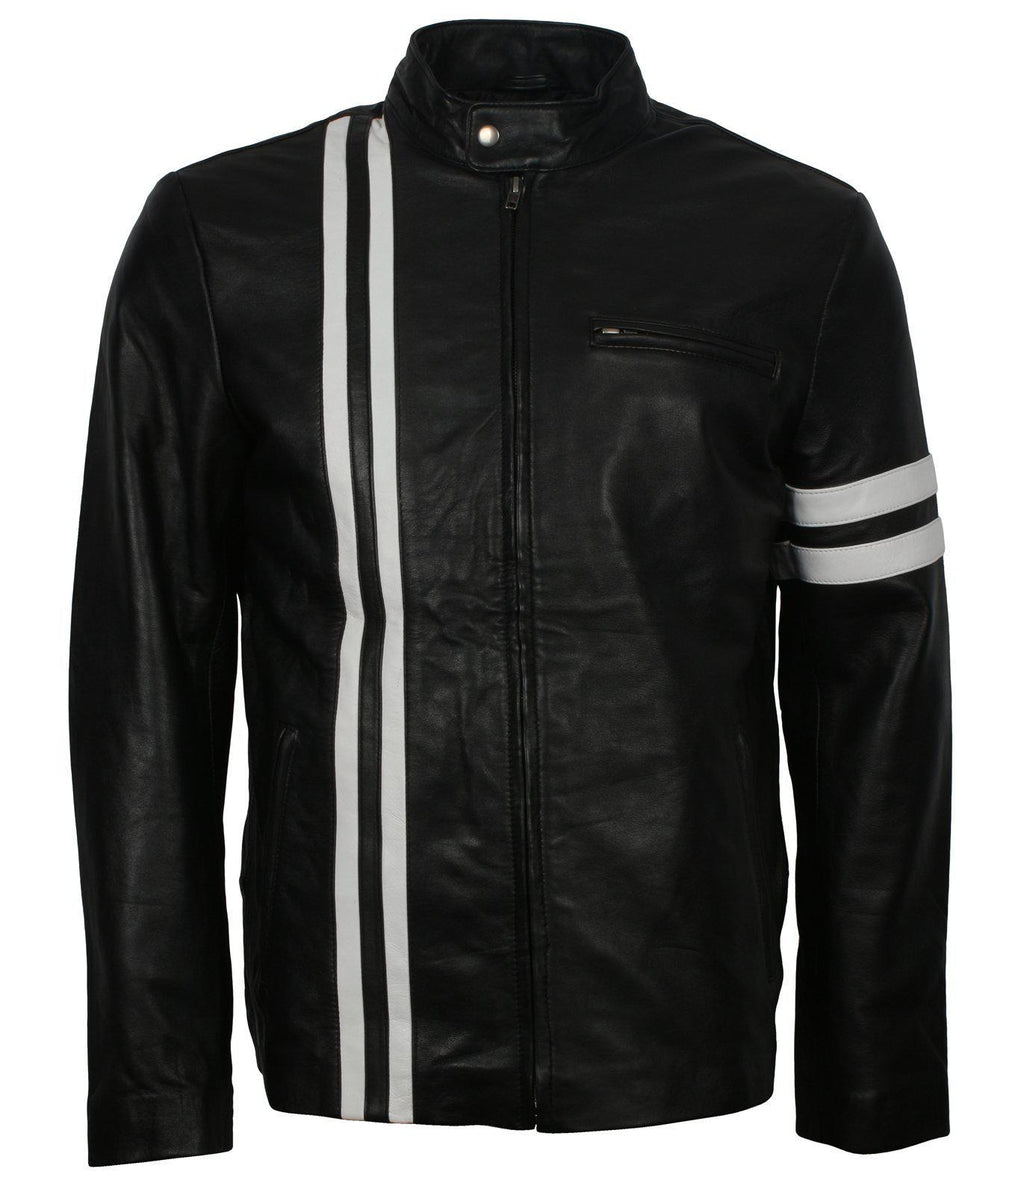 SF Leather Jacket with White Stripes